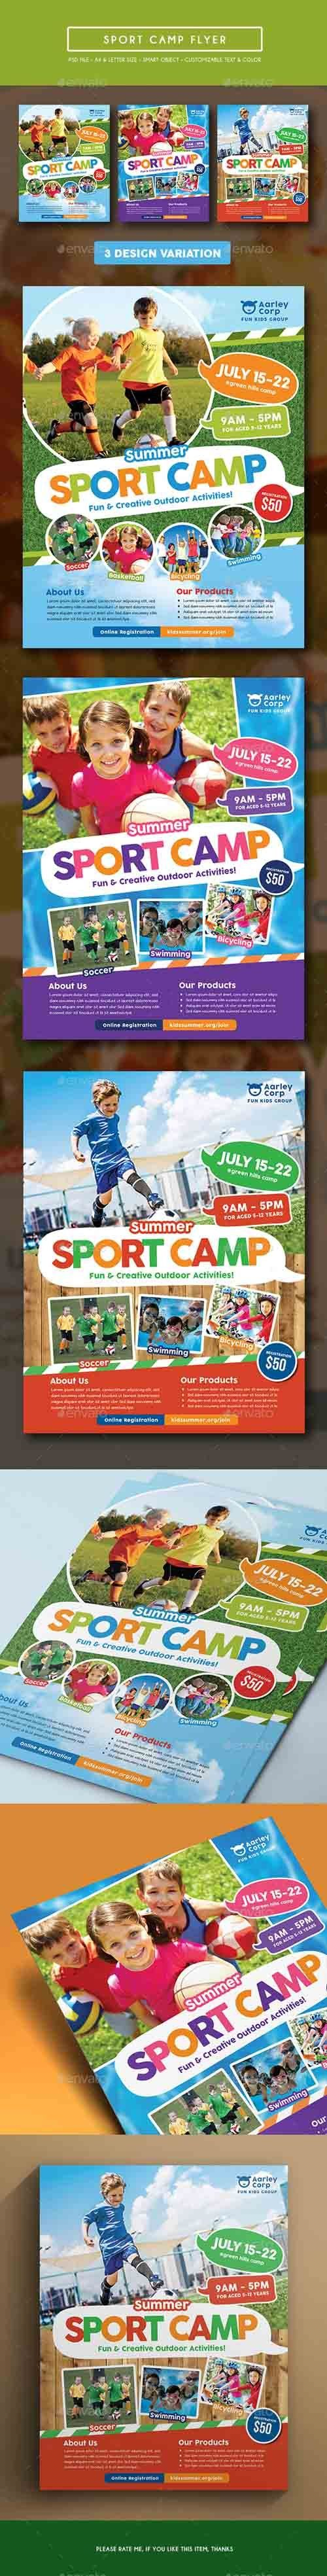 after school program flyer templates after school programs sport camp flyer 15373514 herogfx graphic design